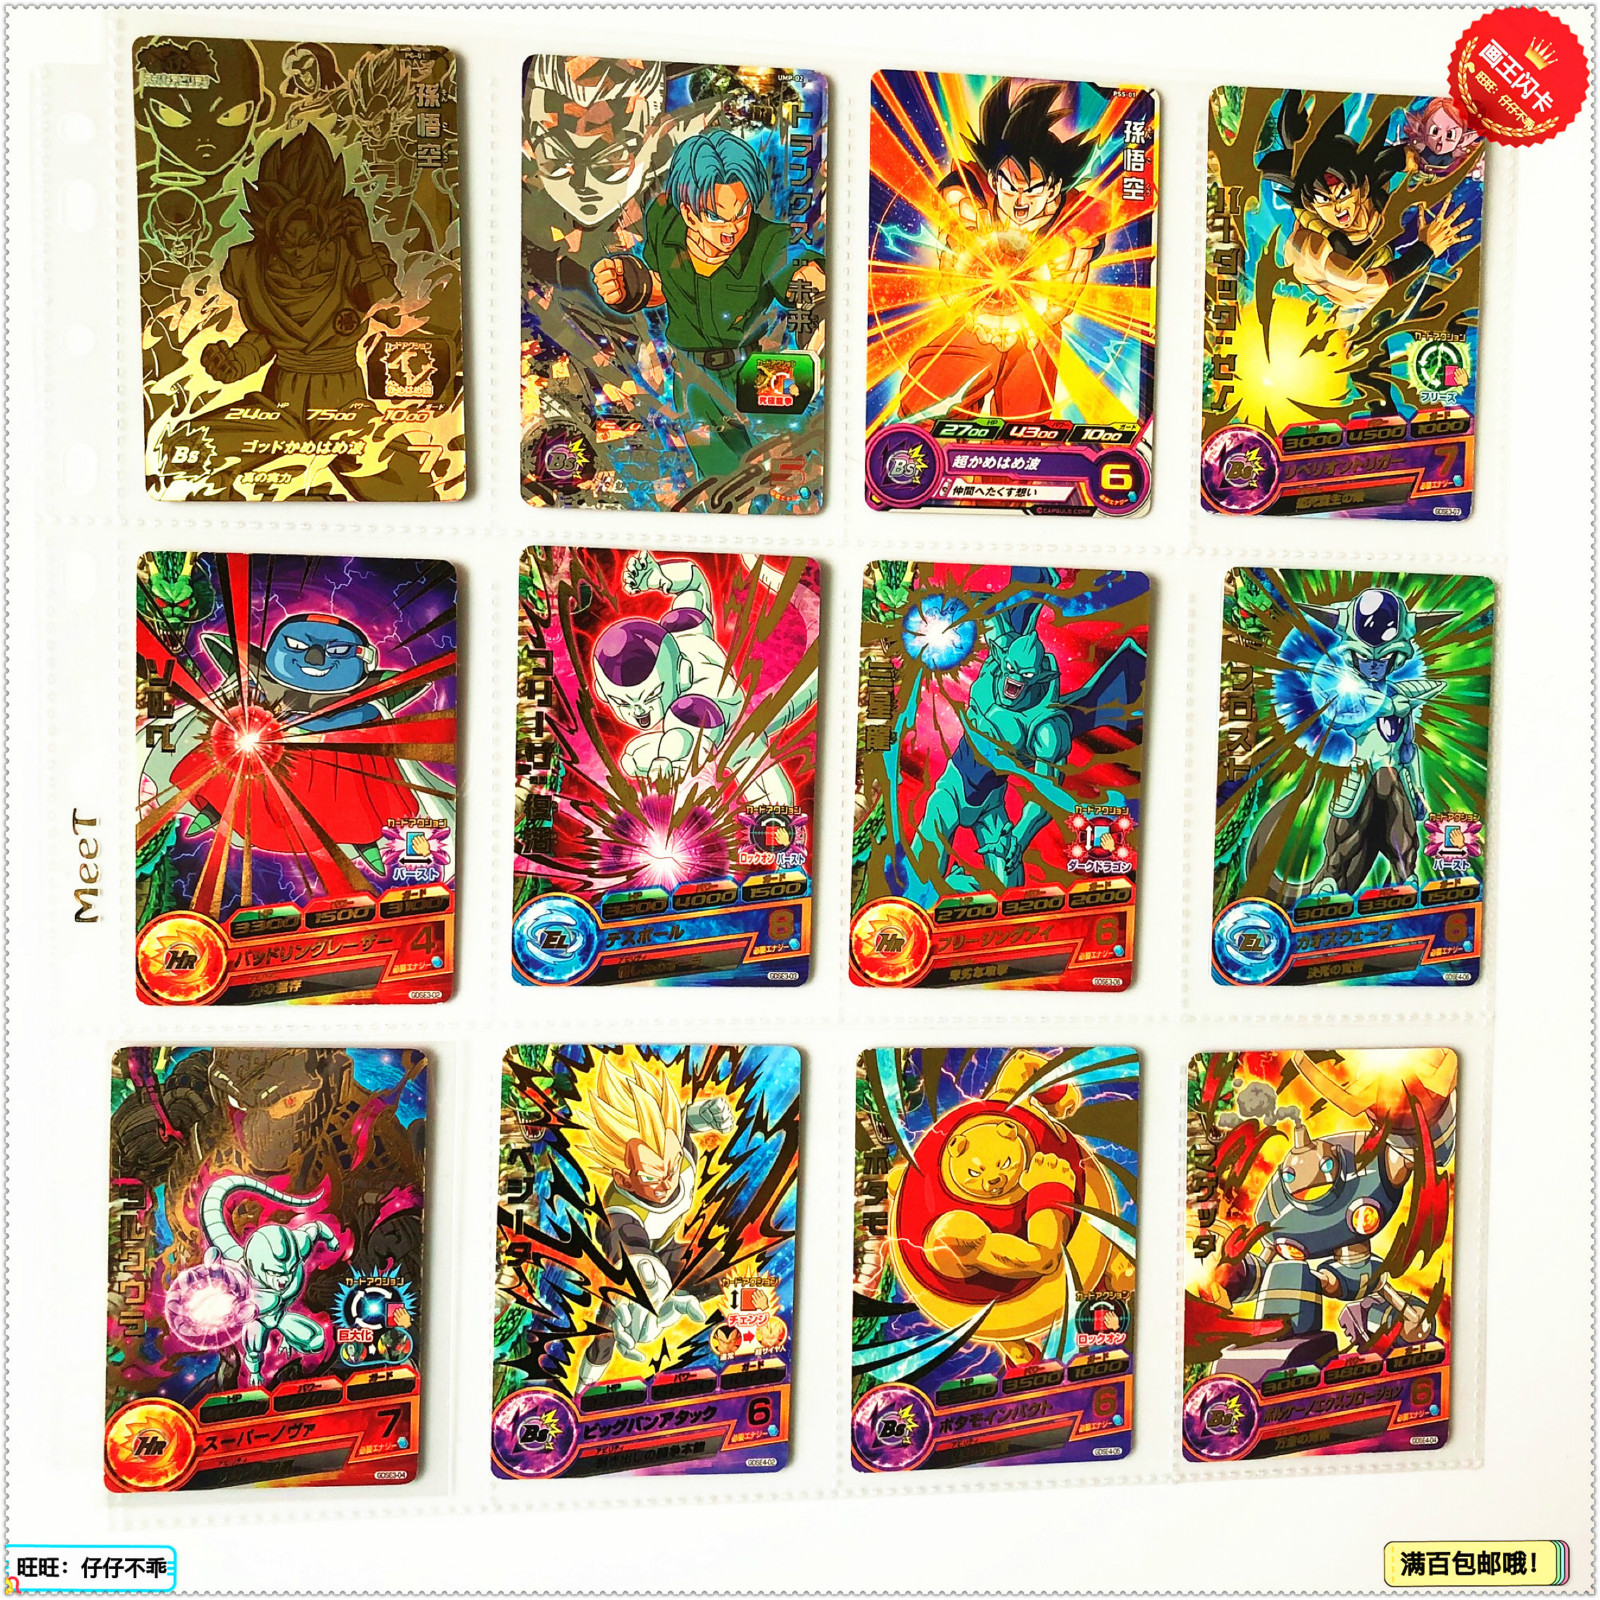 Japan Original Dragon Ball Hero Card GDSE3 4 Goku Toys Hobbies Collectibles Game Collection Anime Cards